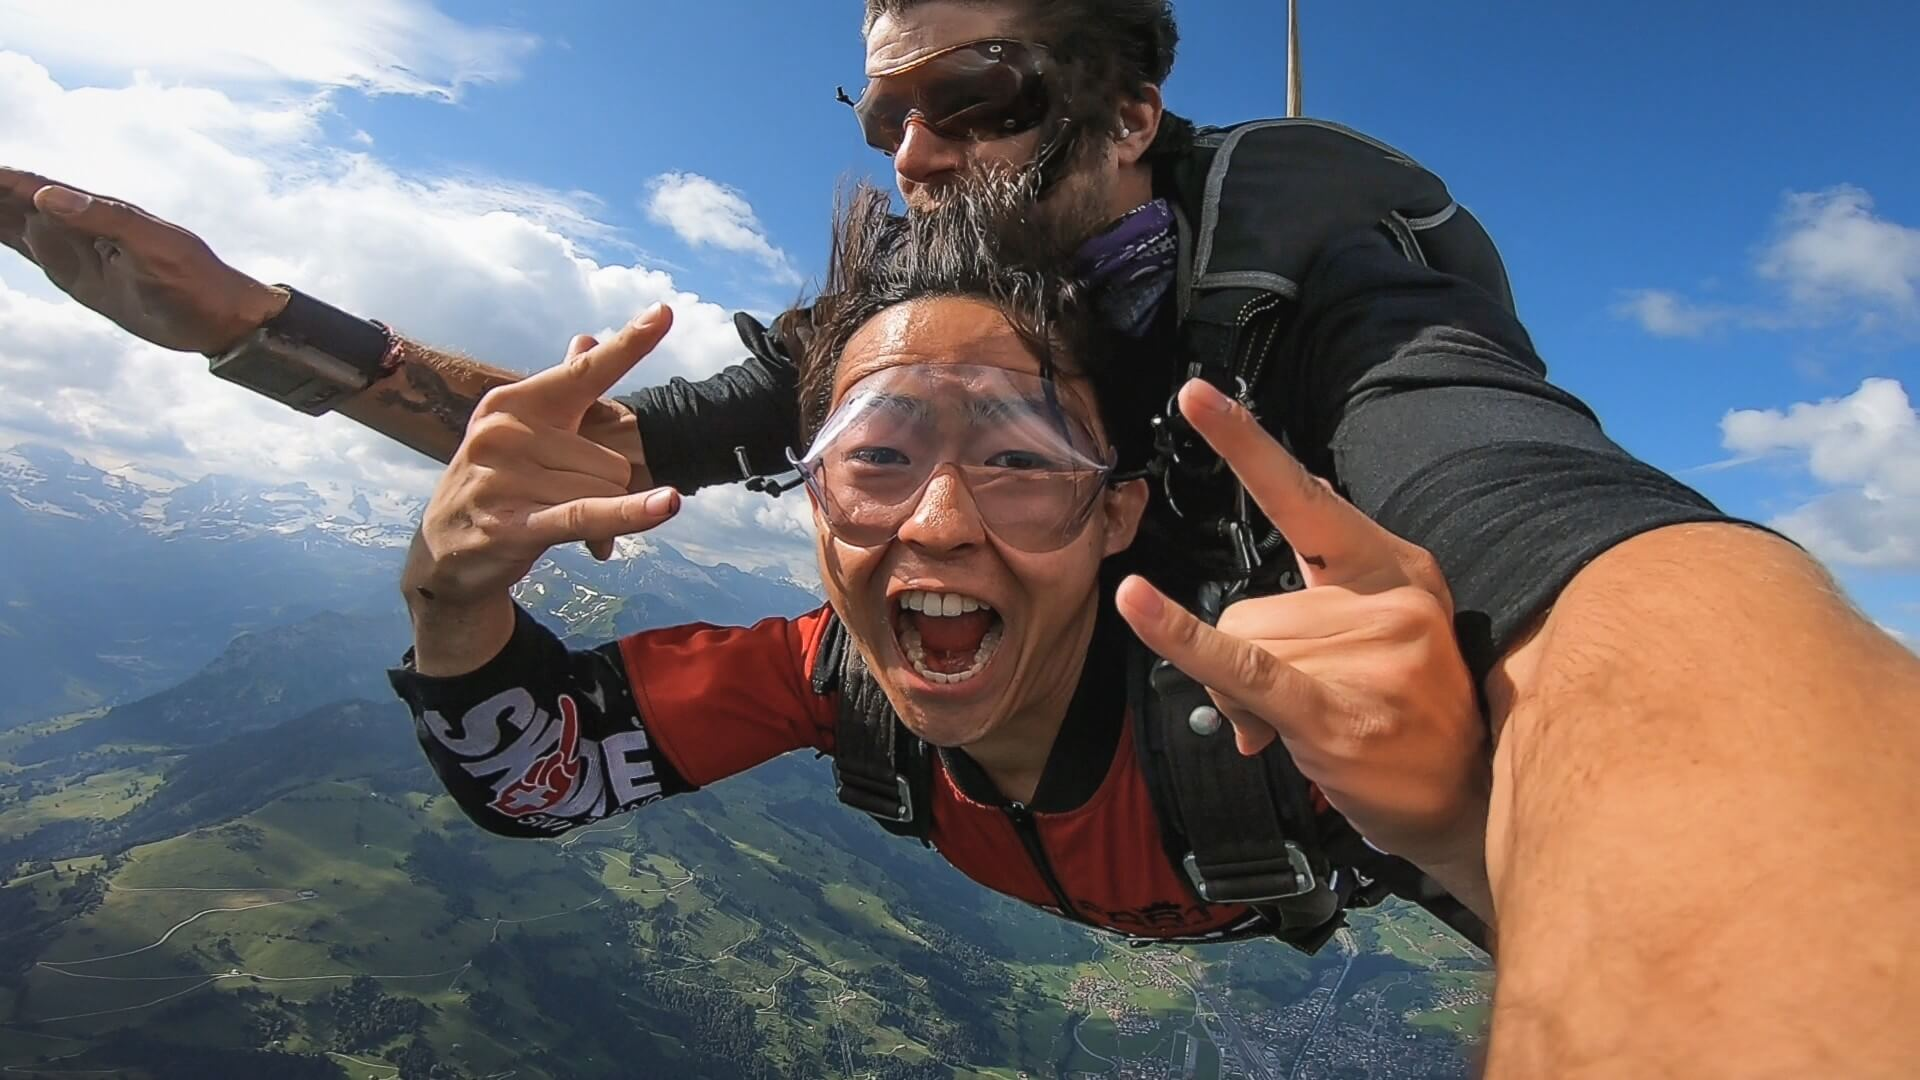 skydive-switzerland-sprung-sommer